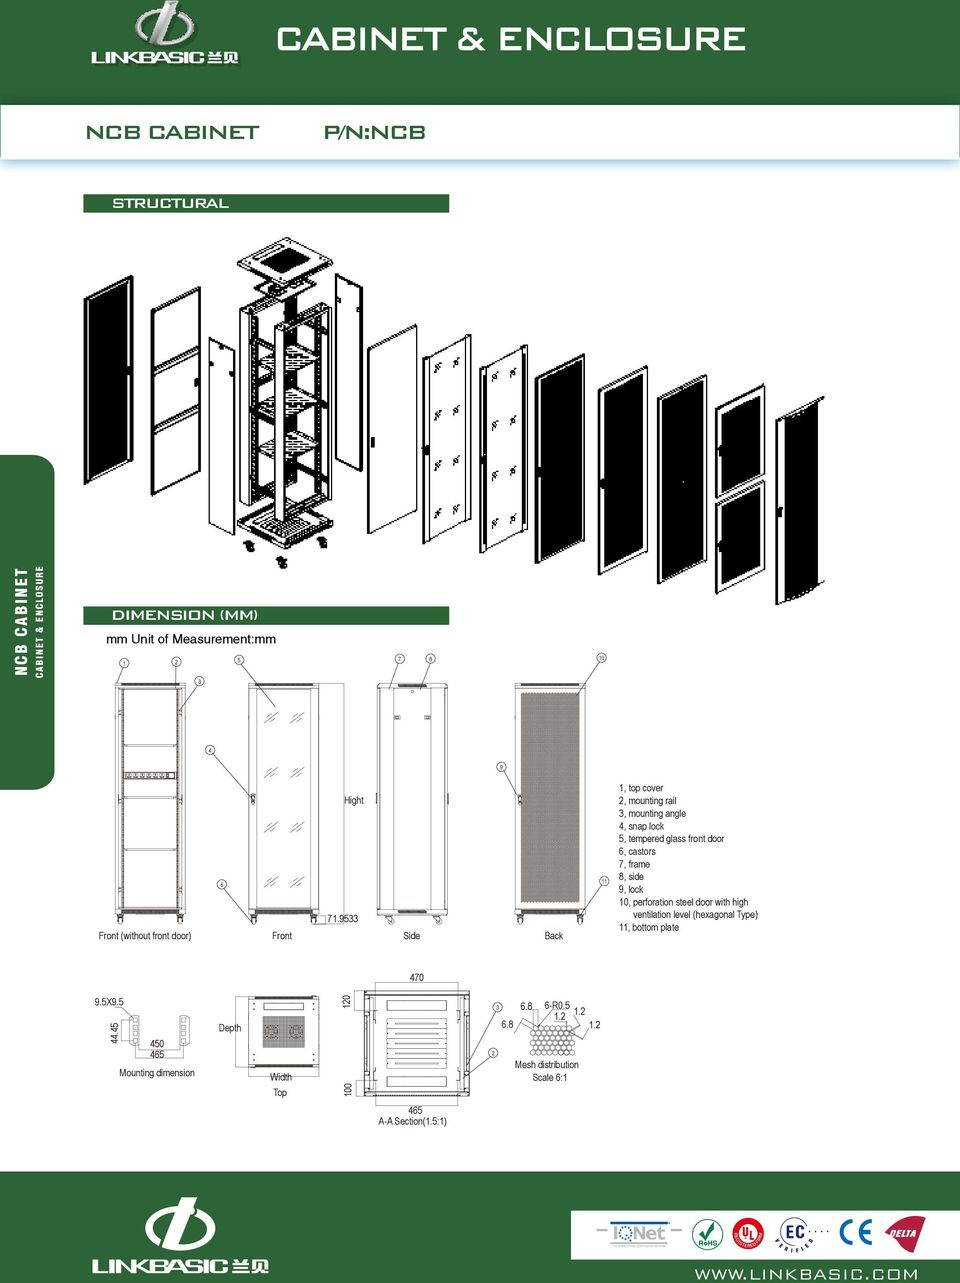 7, frame 8, side 9, lock 0, perforation steel door with high ventilation level (hexagonal Type), bottom plate